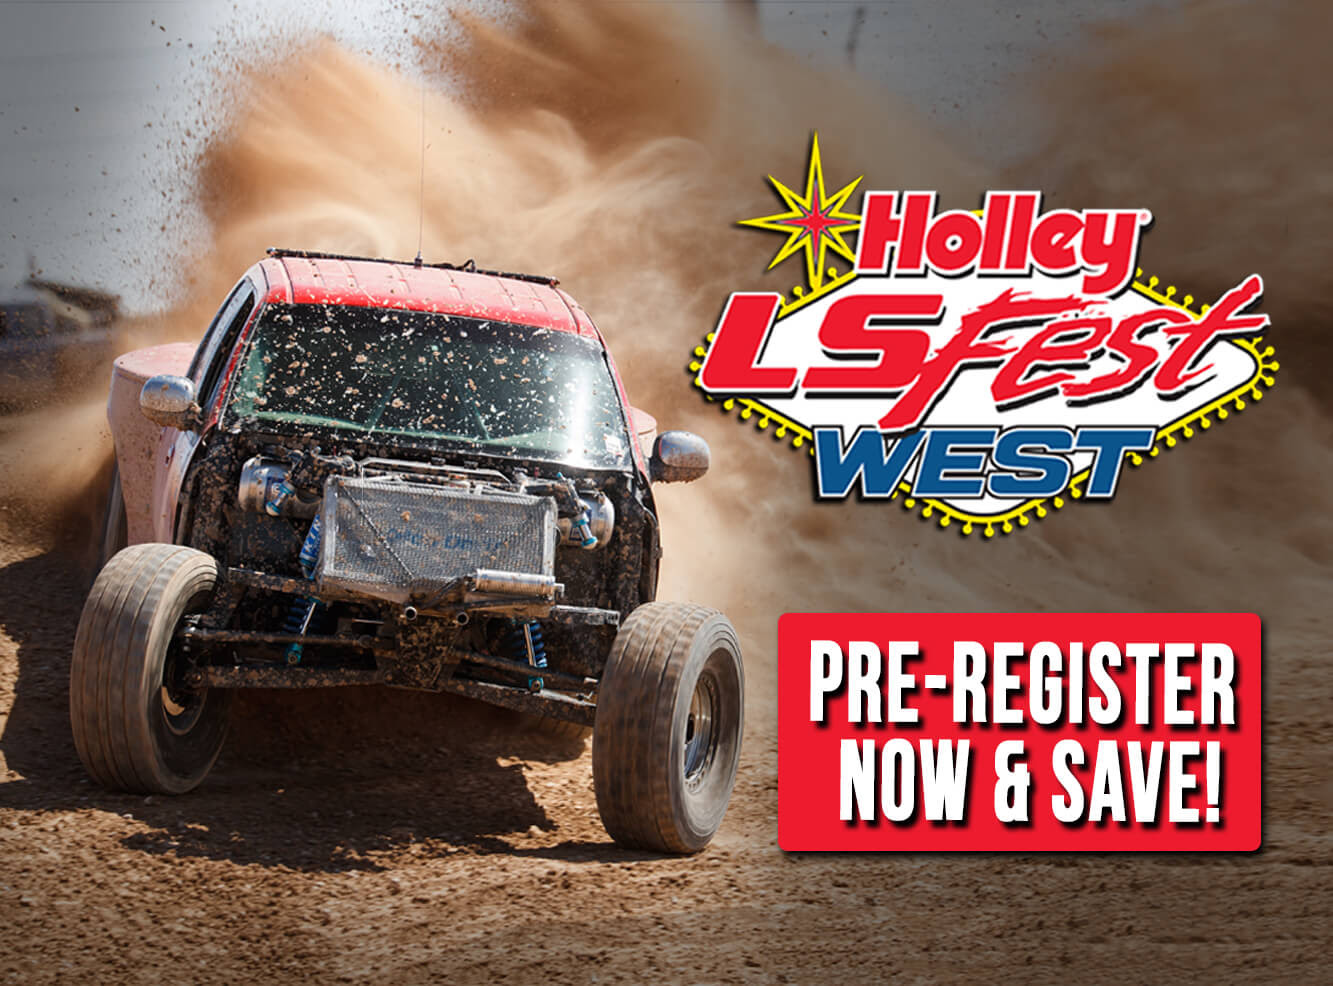 PRE-REGISTER FOR LS FEST WEST NOW! Vegas Baby, Vegas. Don't Miss Out, Registration Is Now Open!